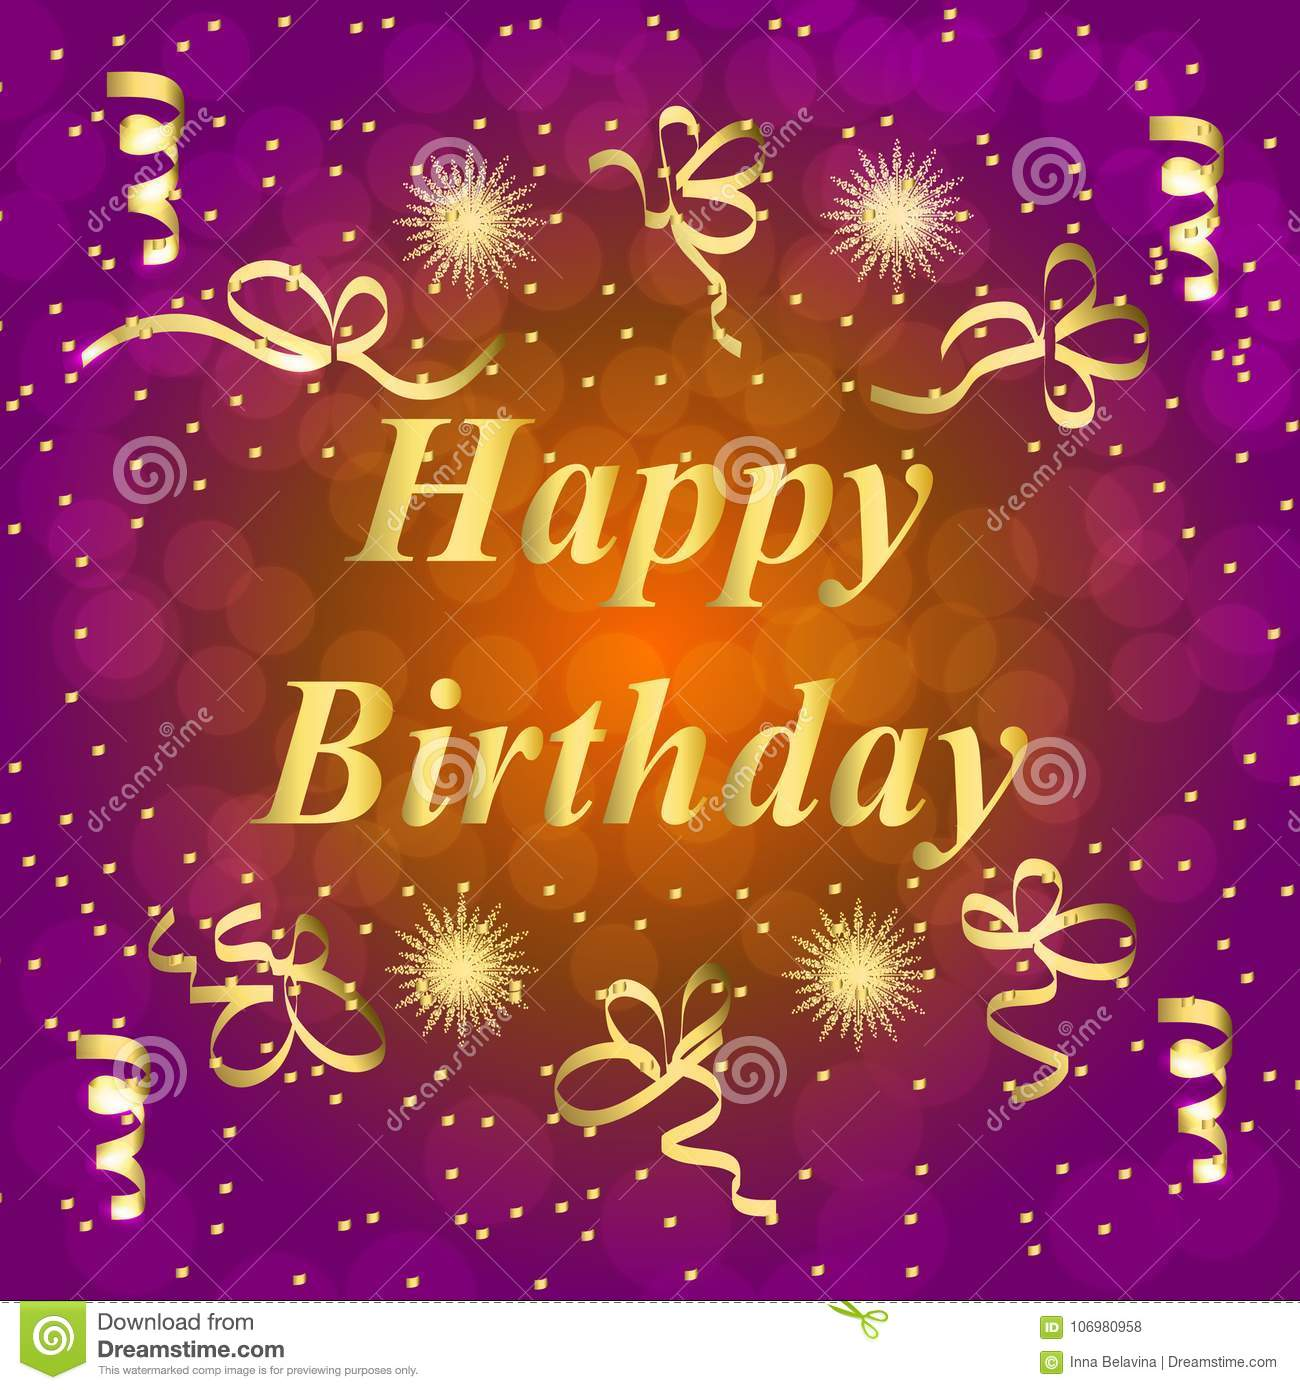 Happy Birthday Greeting Card Brightly Colorful Illustration Happy